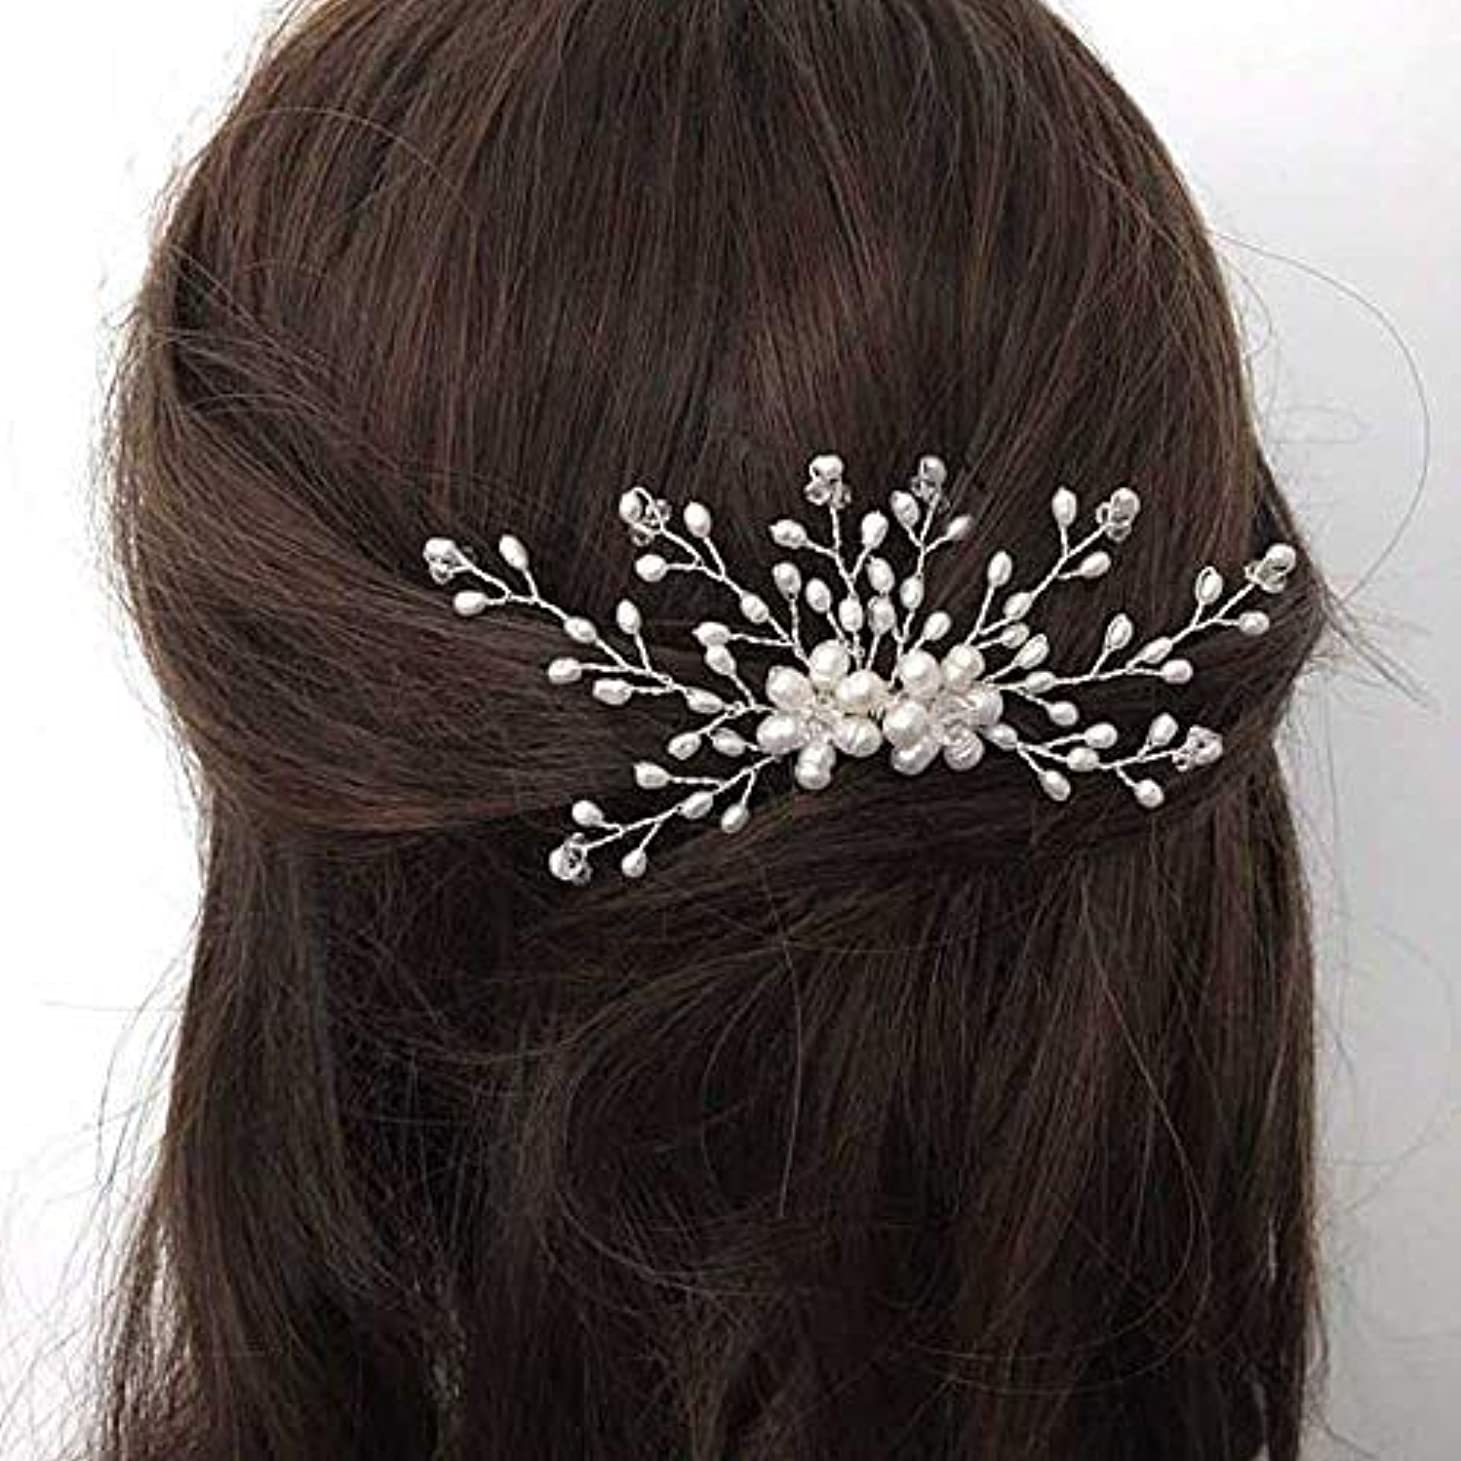 トチの実の木筋肉の相続人Jovono Bride Wedding Hair Comb Bridal Headpieces Beaded Hair Accessories with Crystal for Women and Girls (Silver) [並行輸入品]